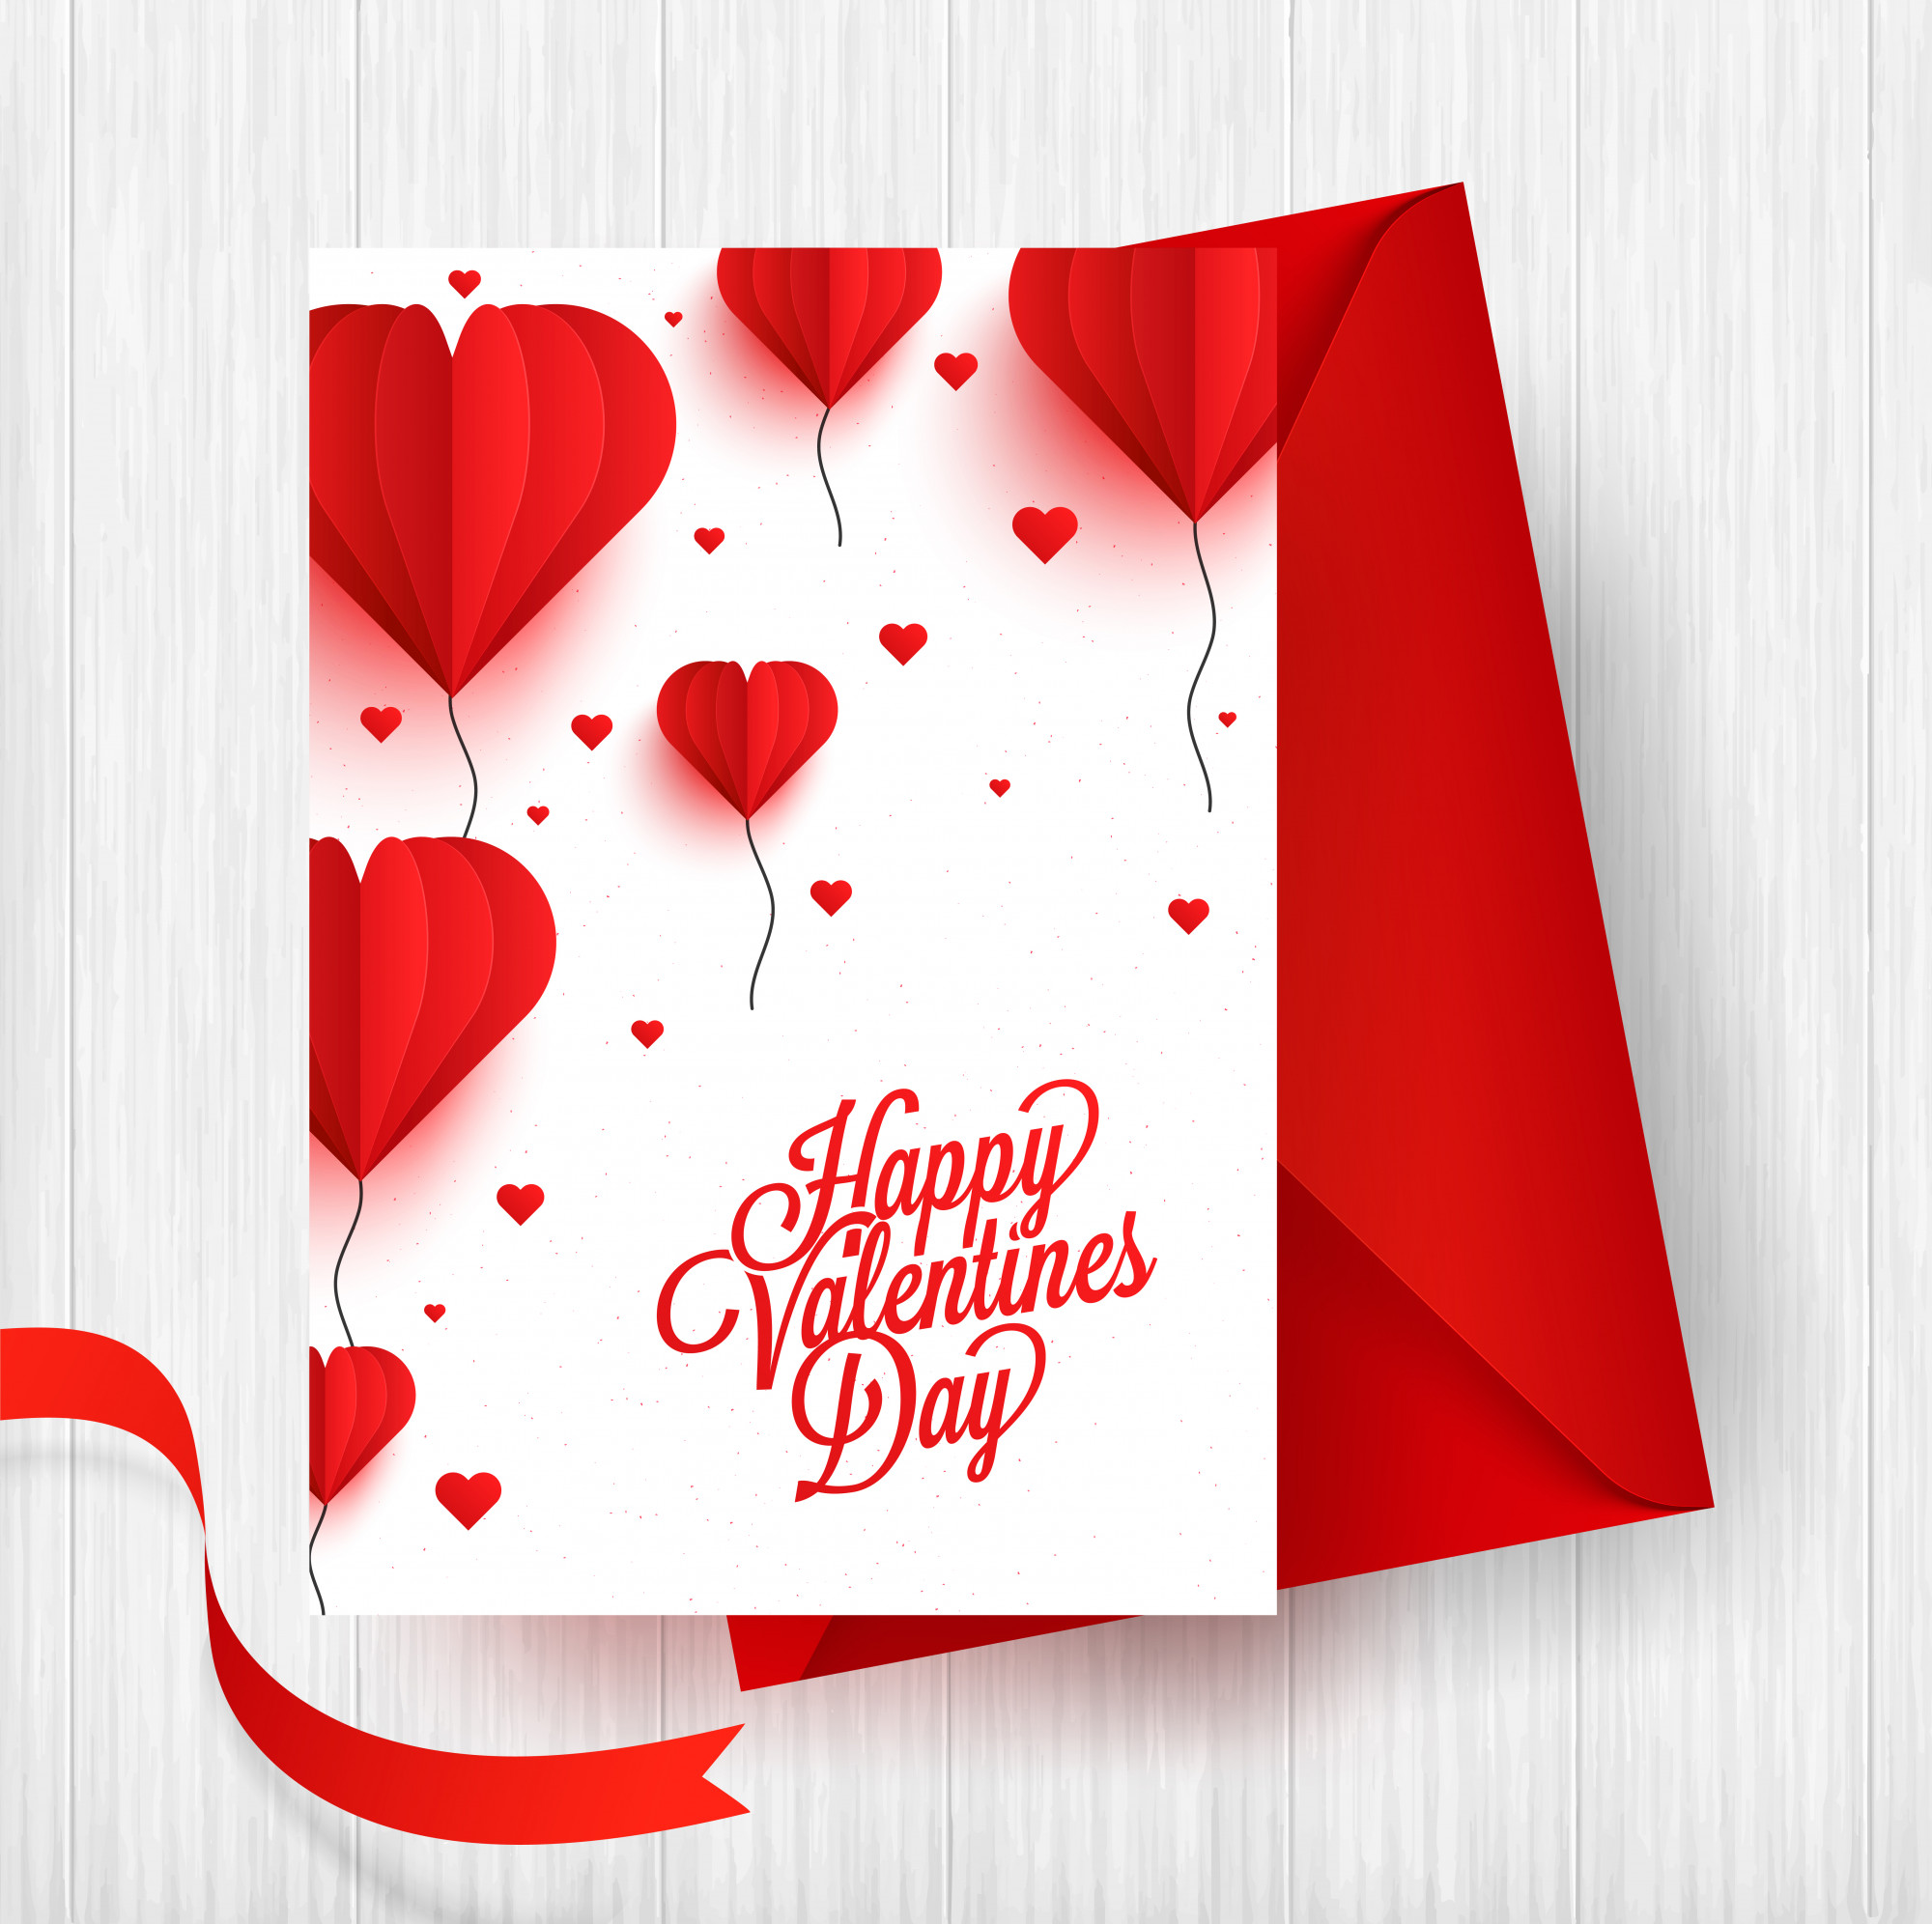 Paper origami of heart shape balloons on white background